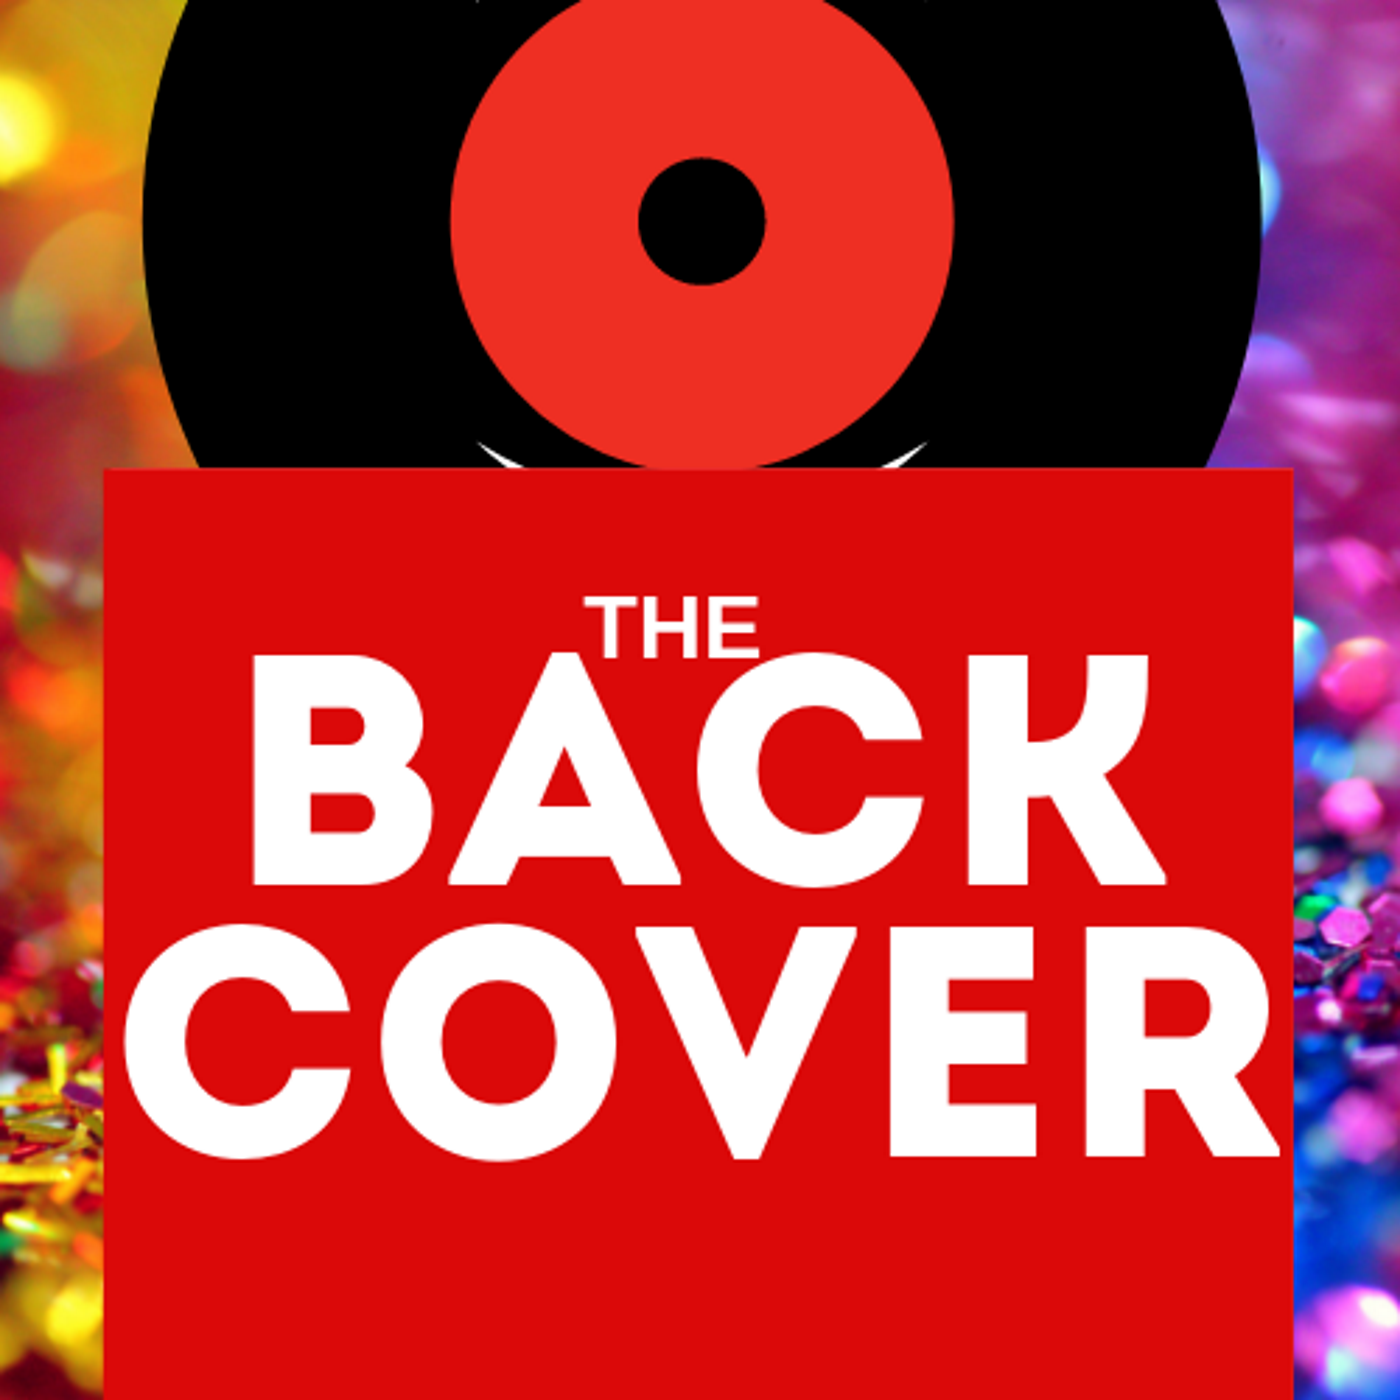 The Back Cover show art